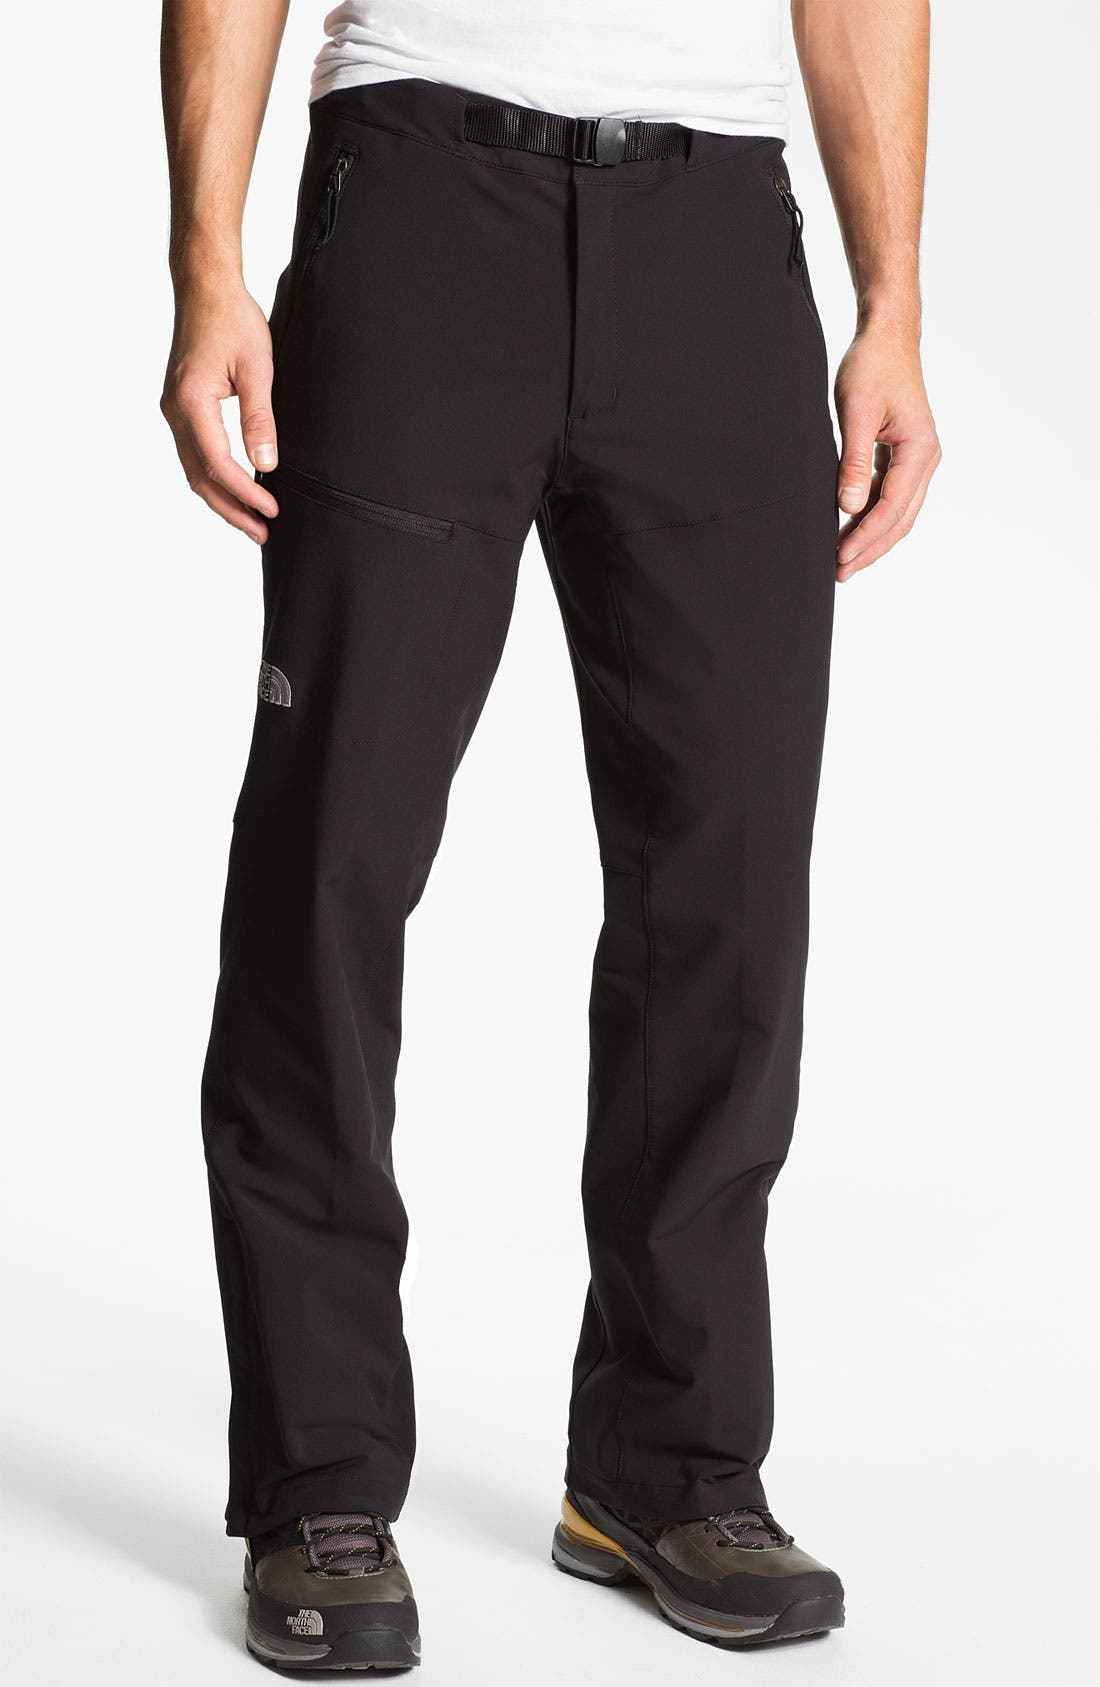 Main Image - The North Face 'Cotopaxi' Pants